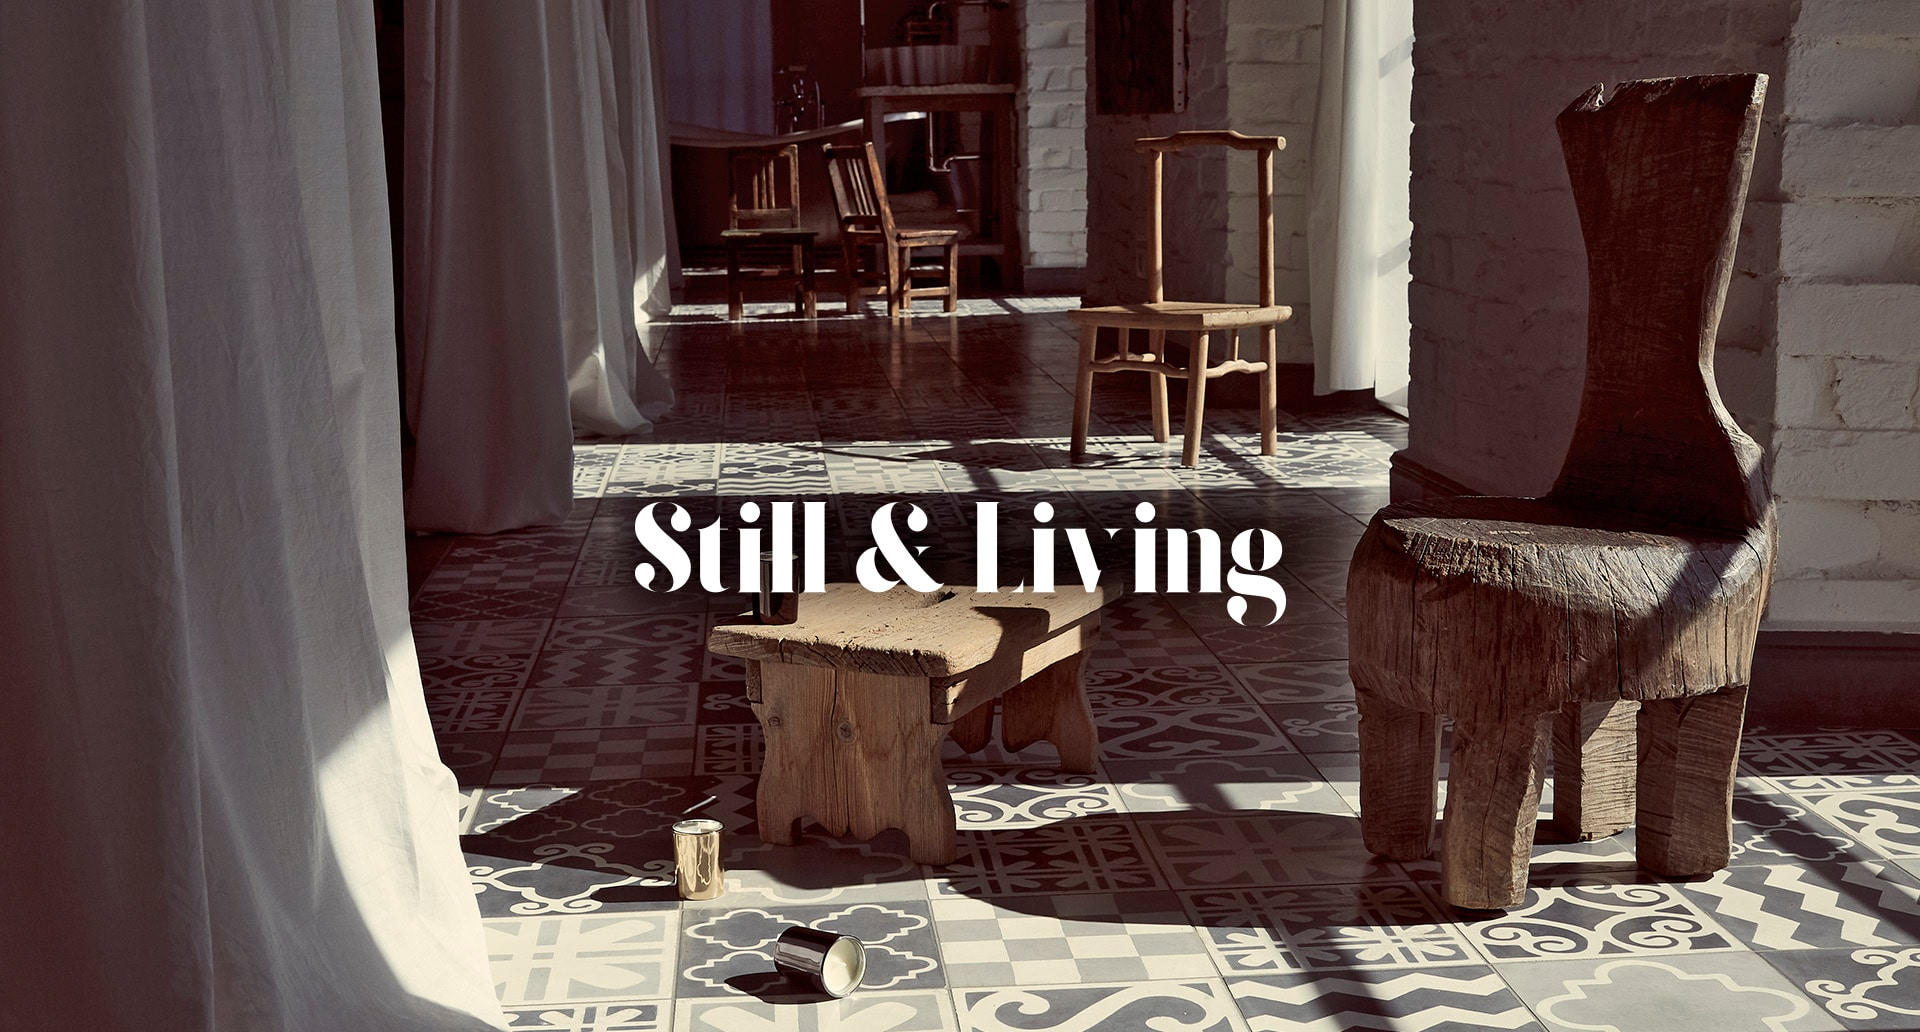 Next: Still & Living